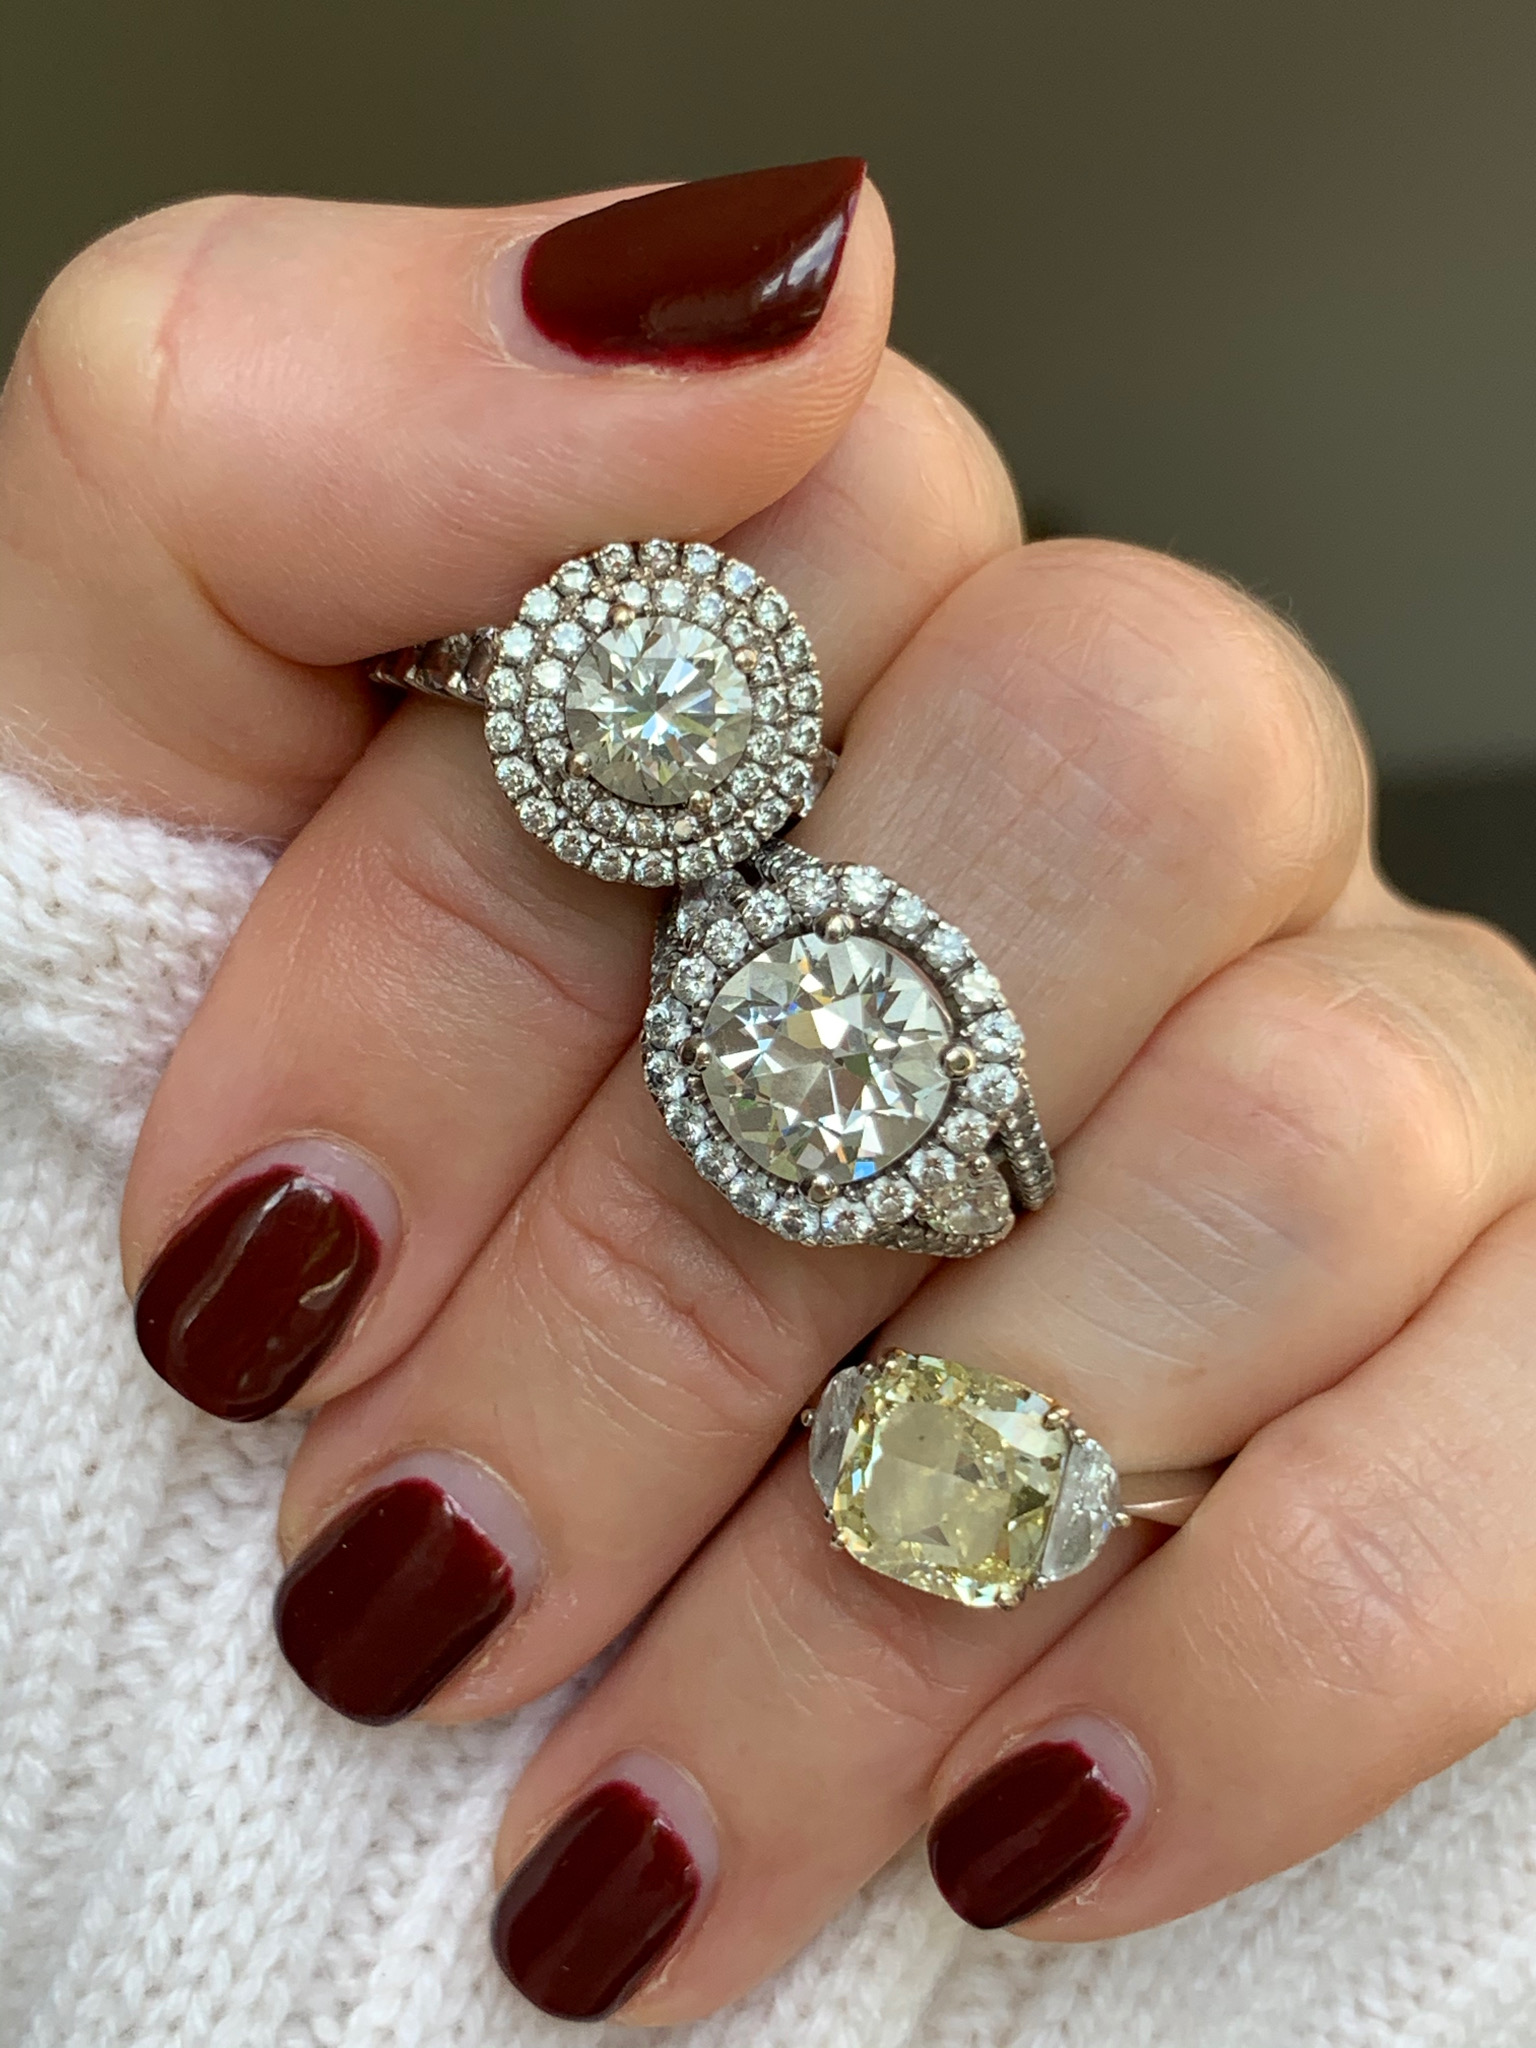 4 different rings with or without diamond halo